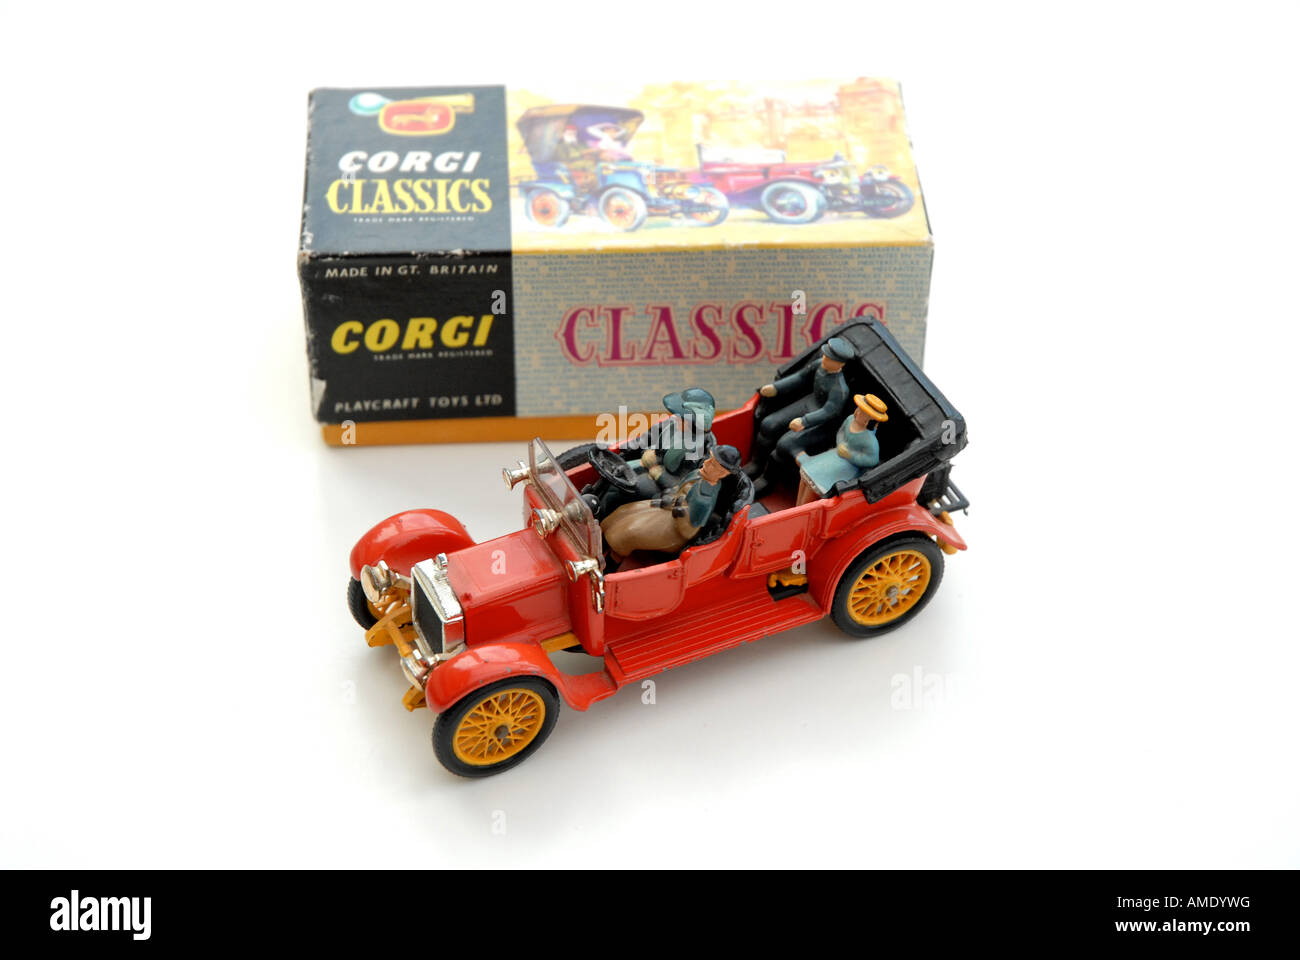 Vintage Toys Stock Photos & Vintage Toys Stock Images - Alamy